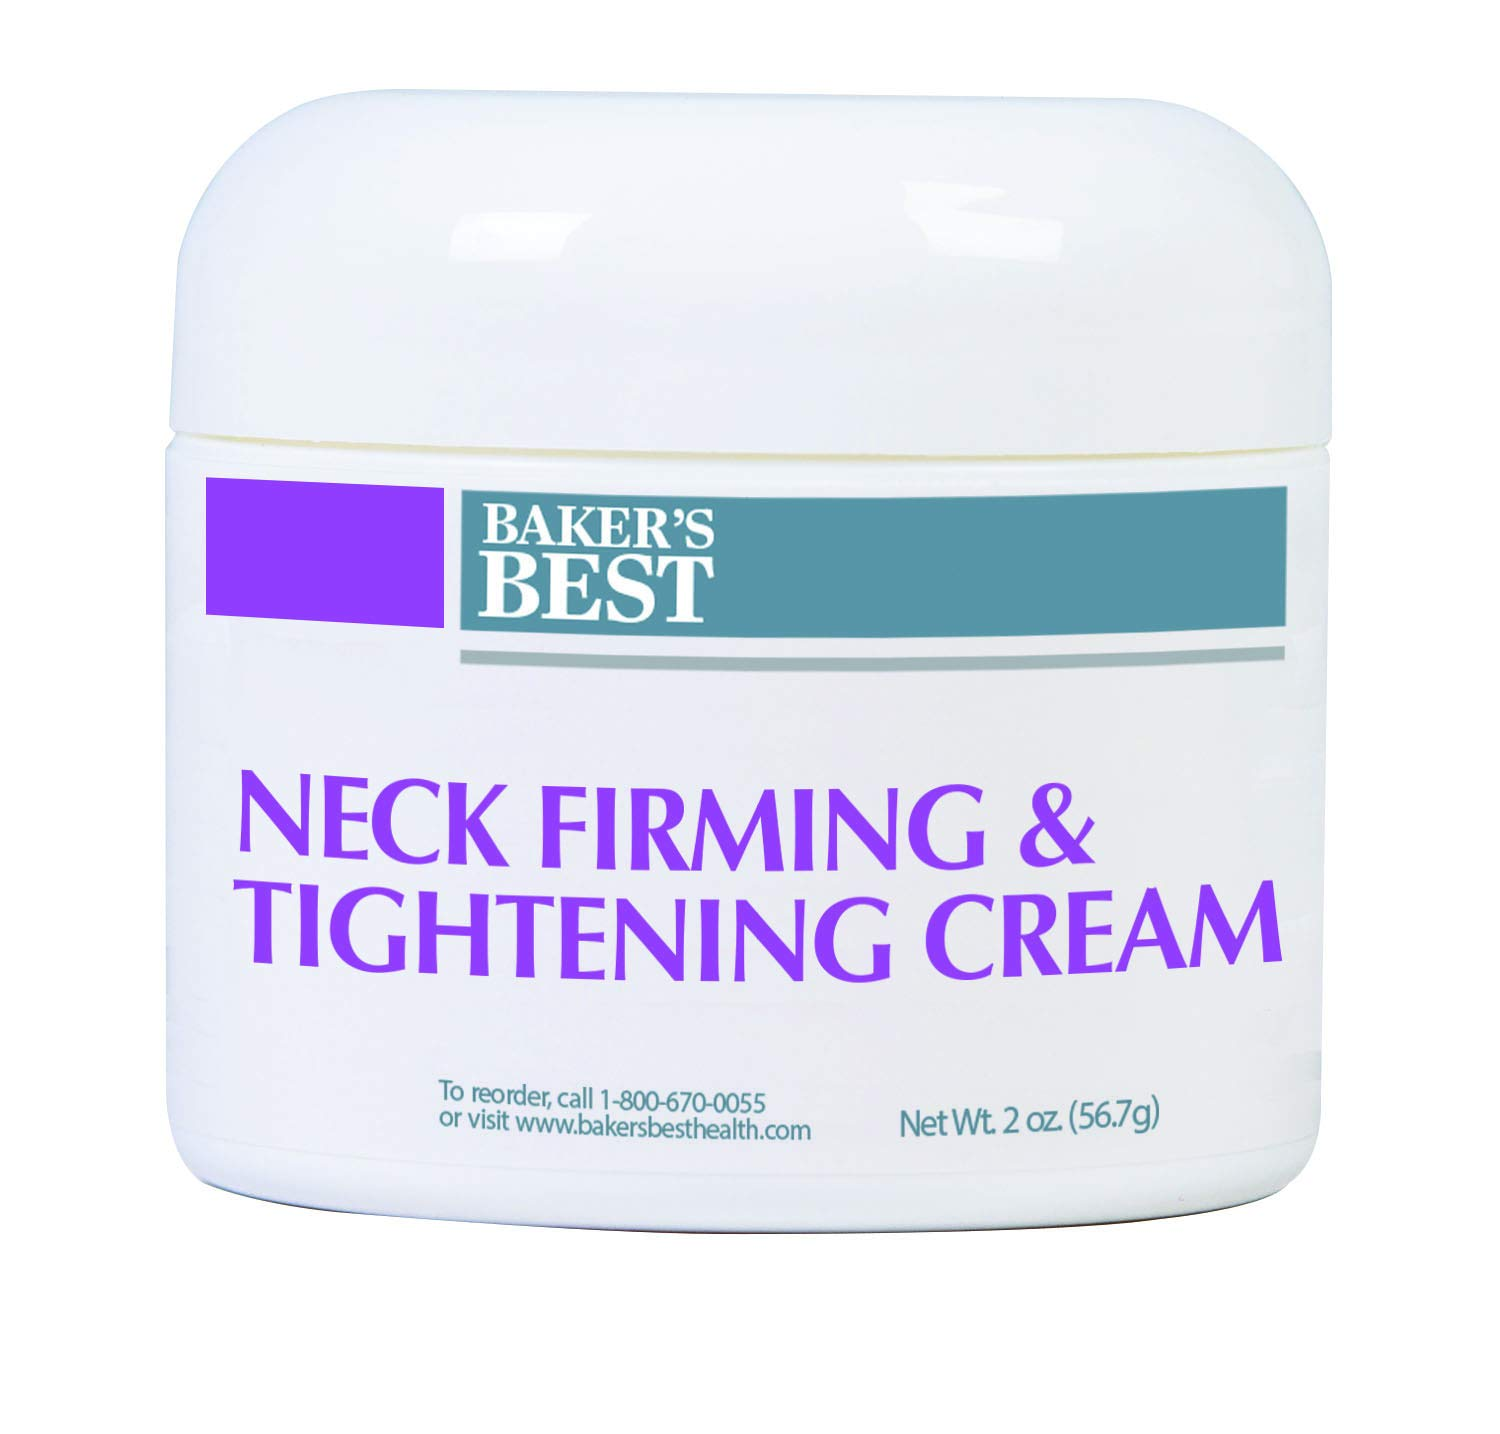 Baker's Best Neck Firming & Tightening Cream – For firming up sagging, aging and crepey skin, décolletage, and wrinkles, collagen-boosting – neck cream for sagging and tightening – 2 oz cream